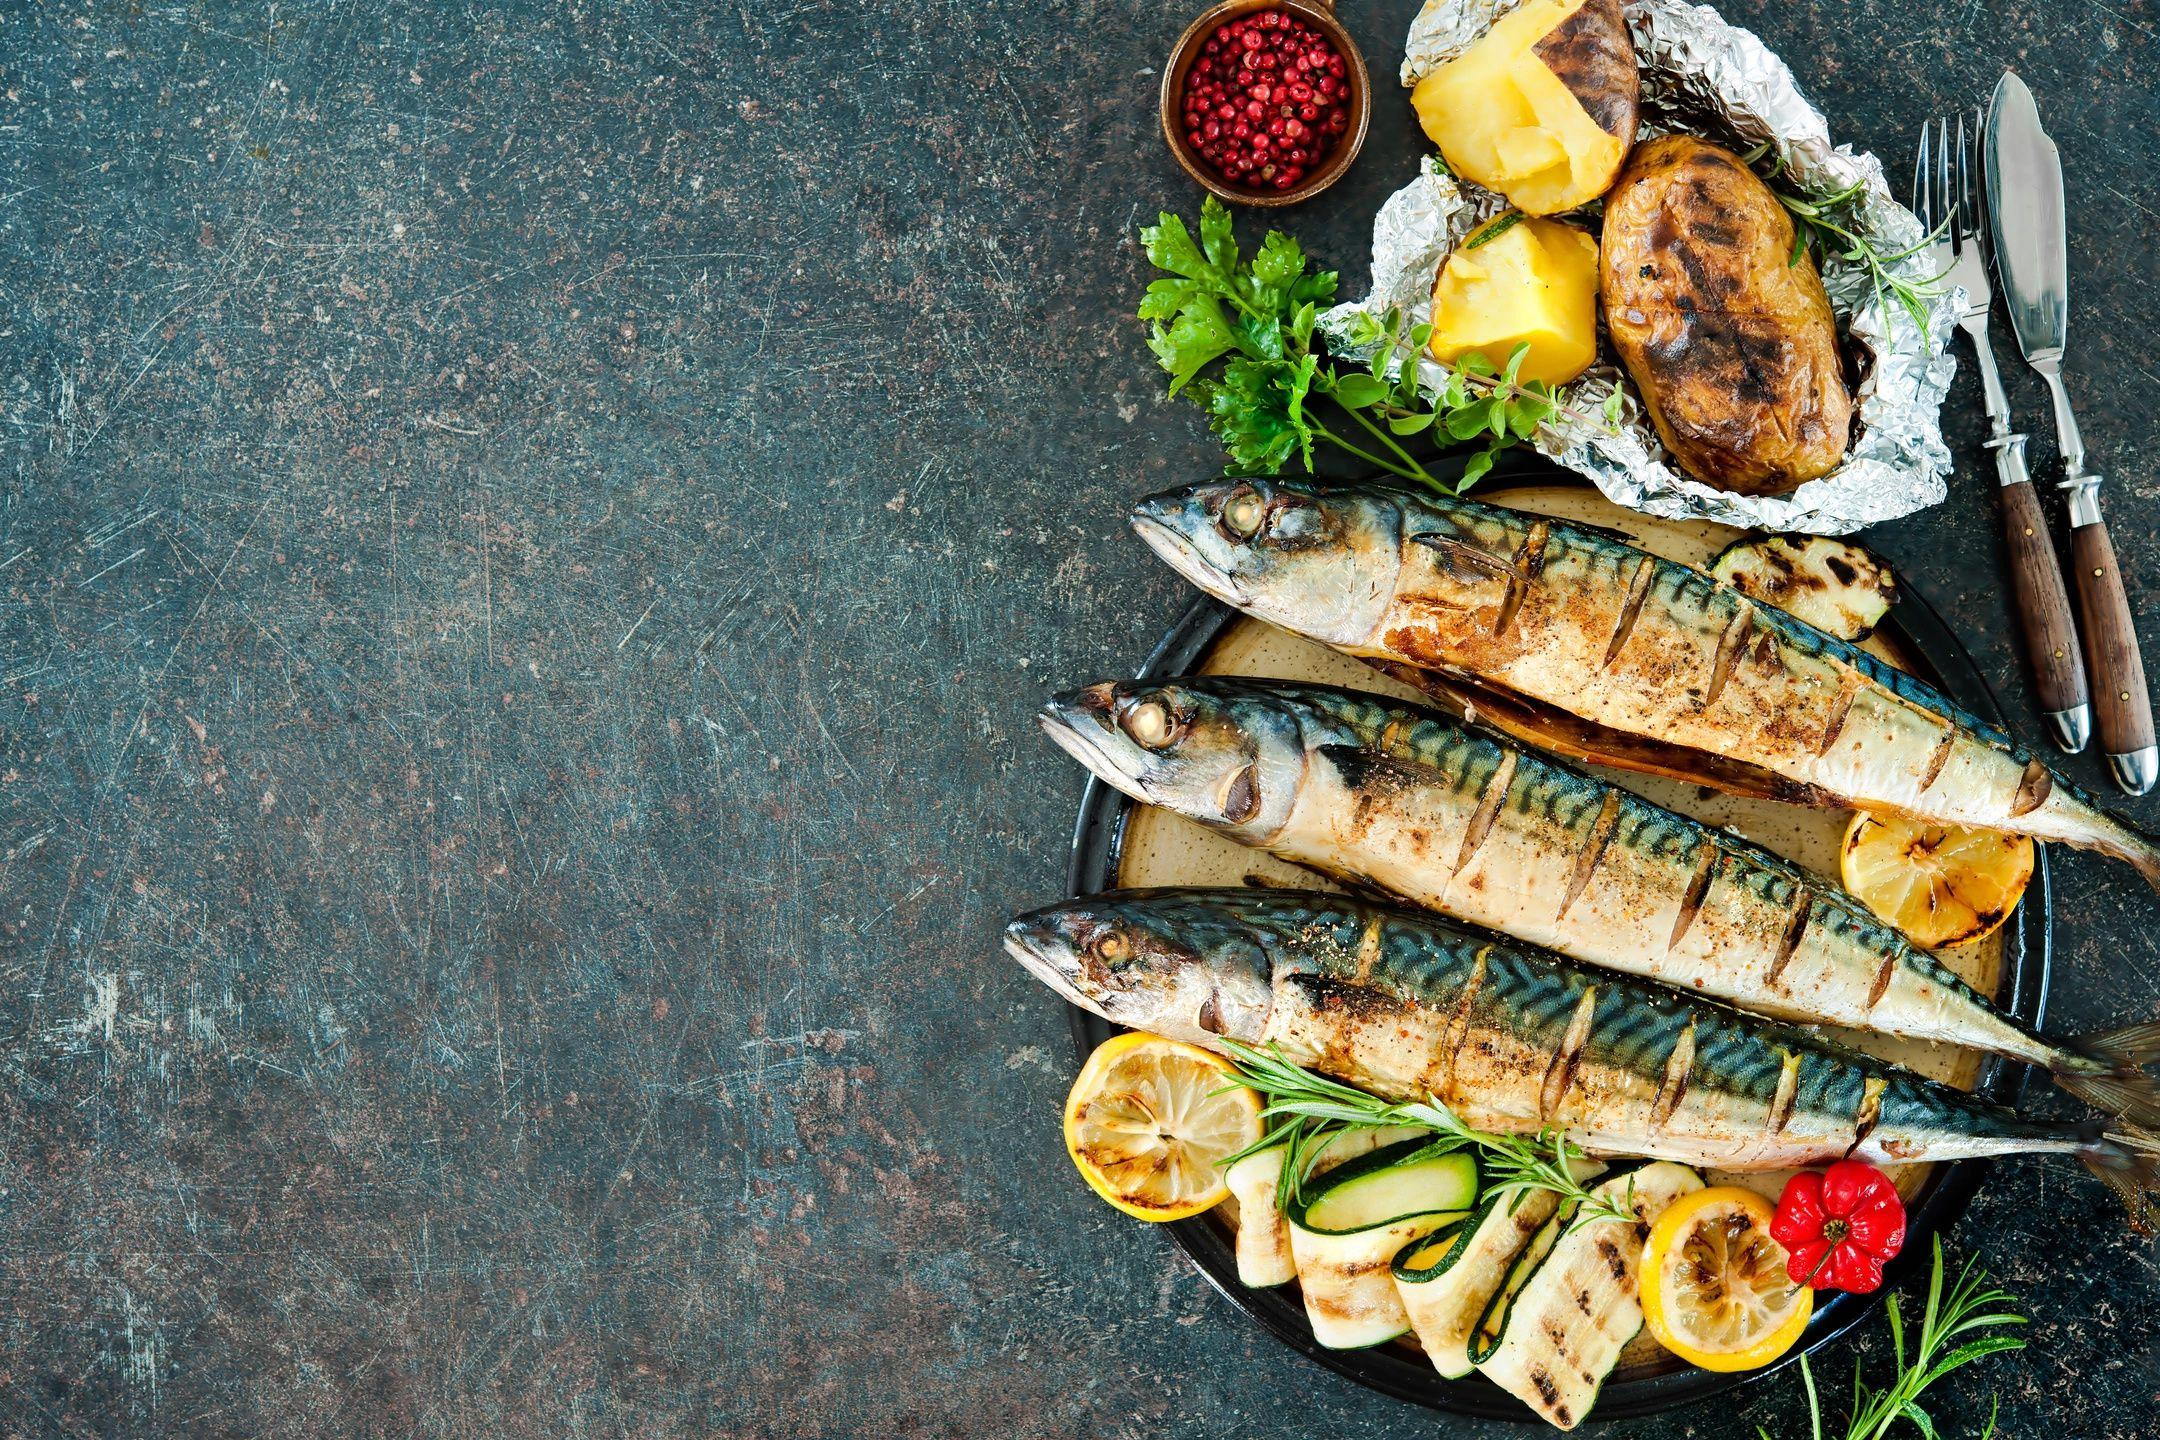 What Does it Mean to be Pescatarian?